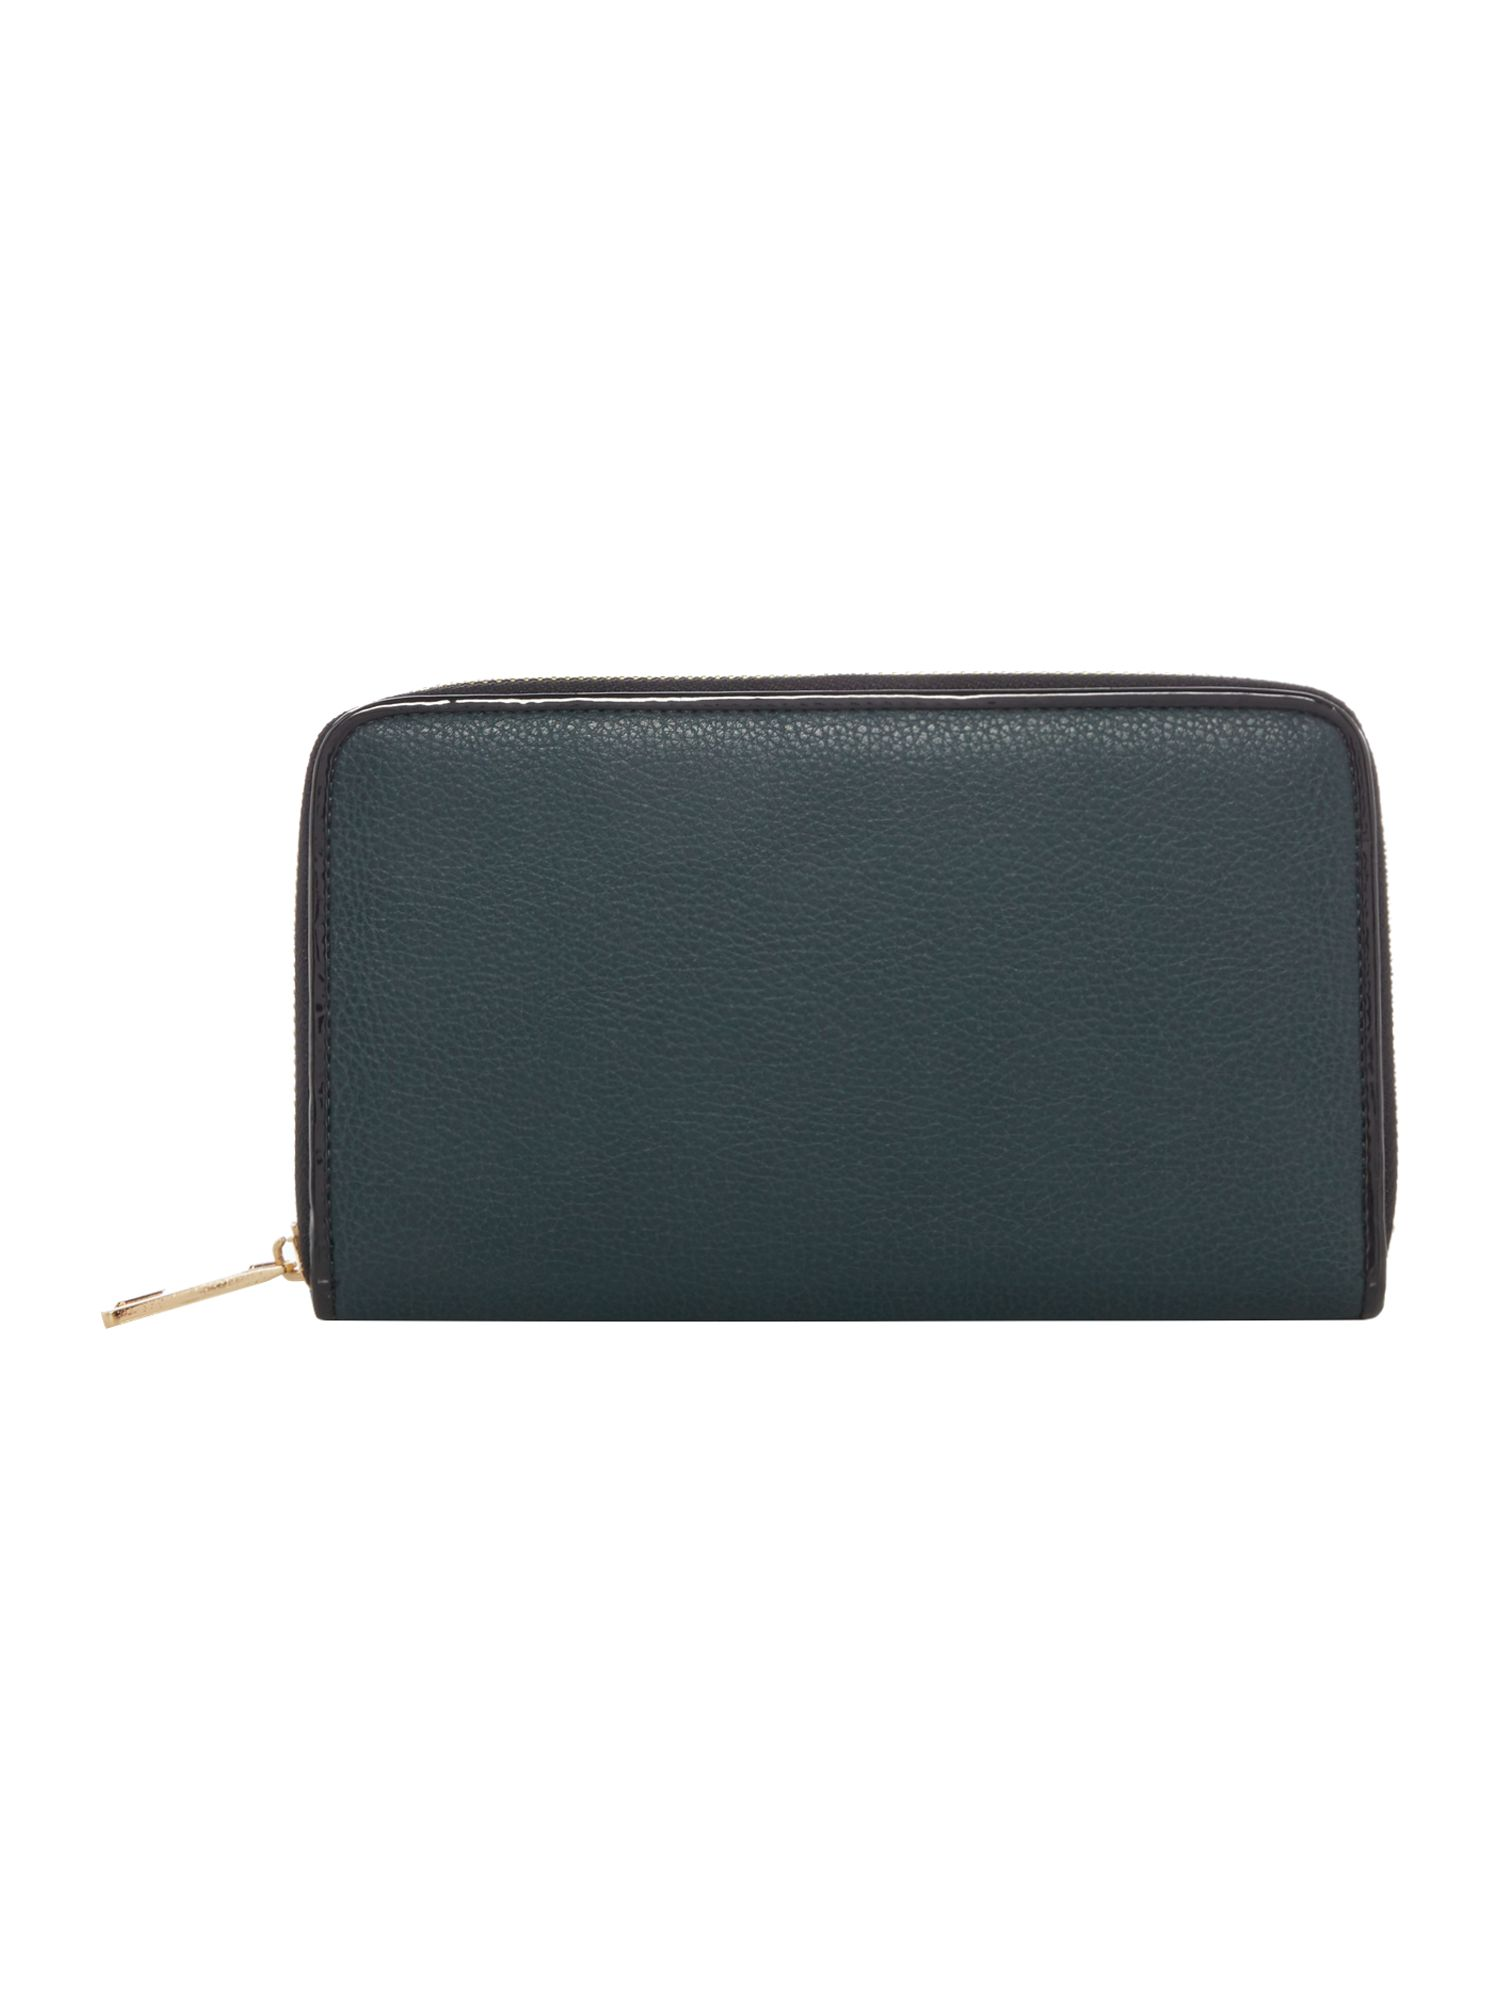 Therapy Zip around cotinental wallet, Green